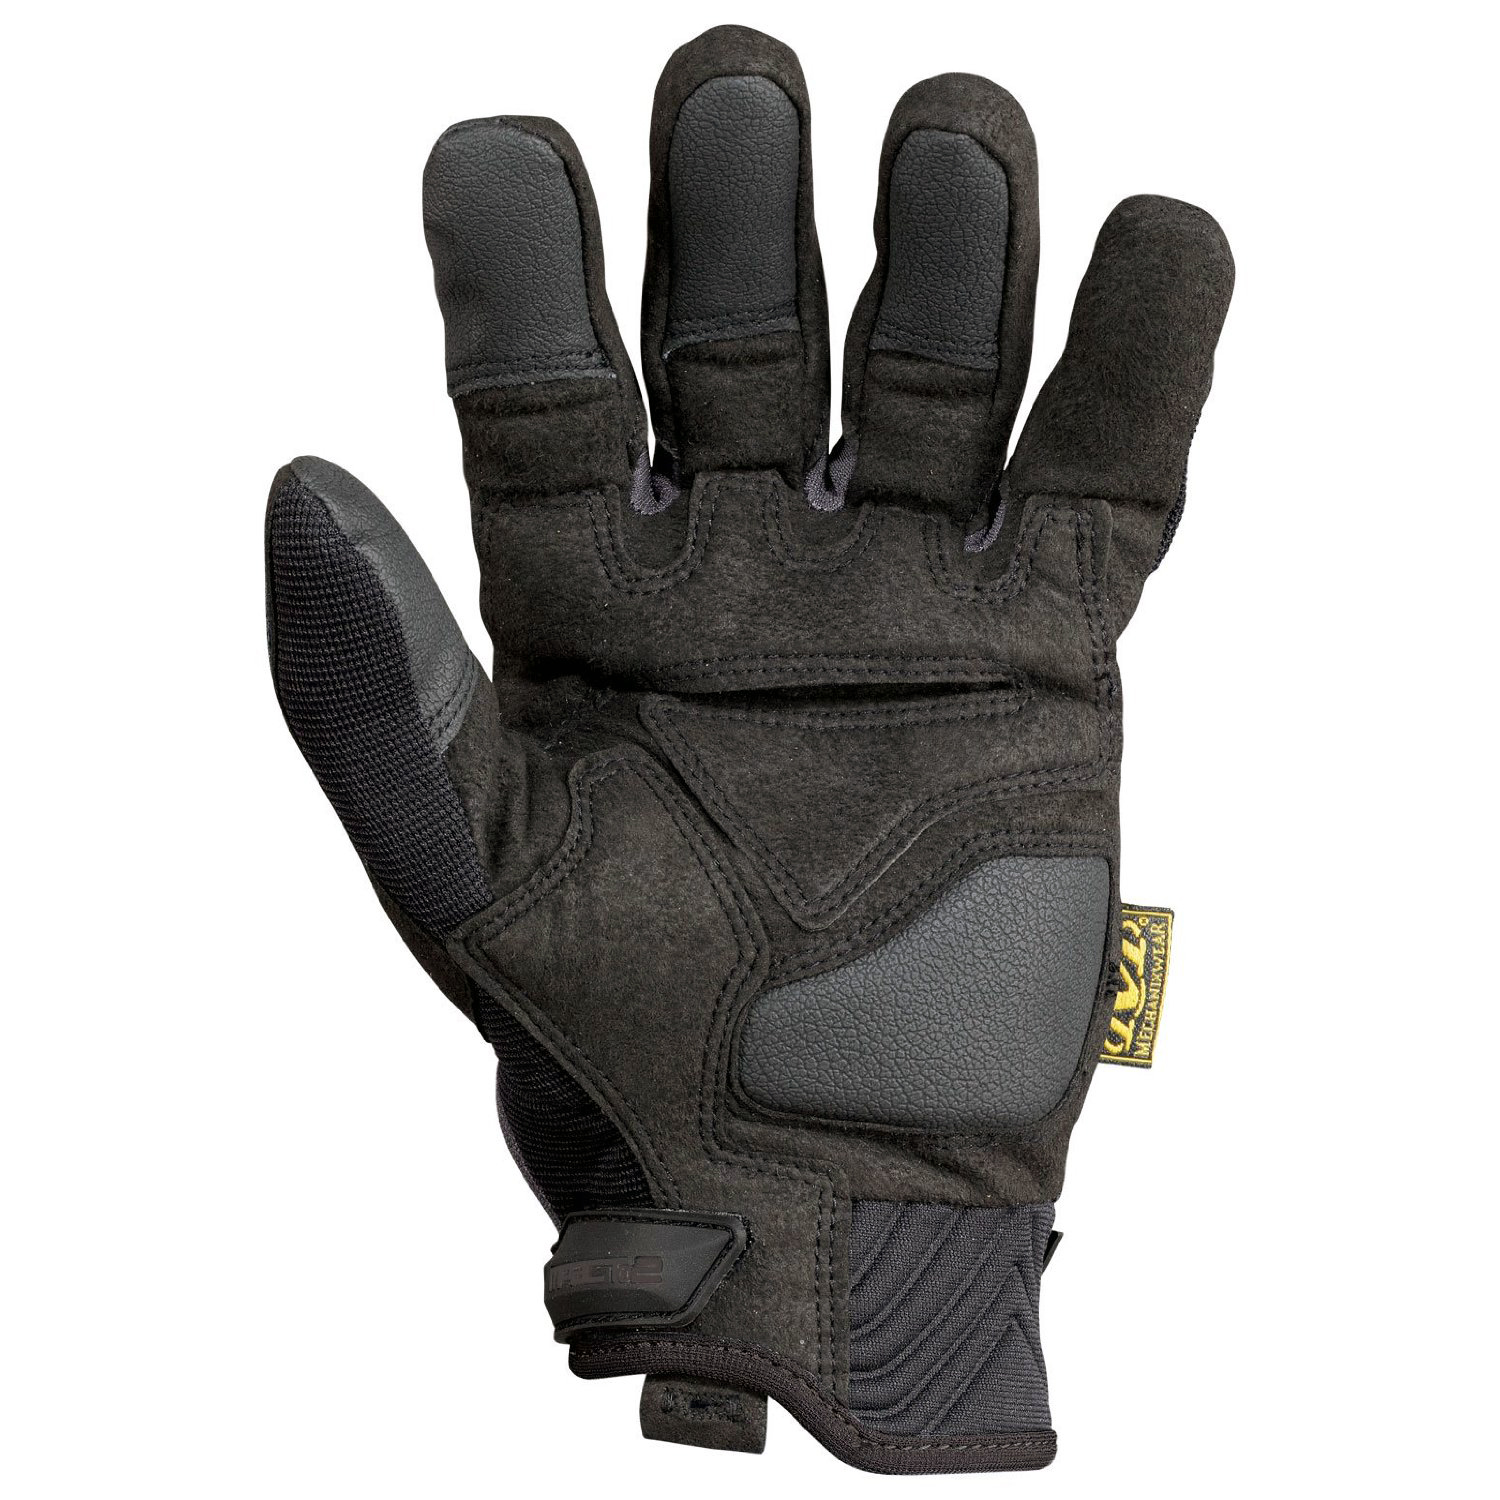 Leather work gloves m pact 2 -  Picture 4 Of 10